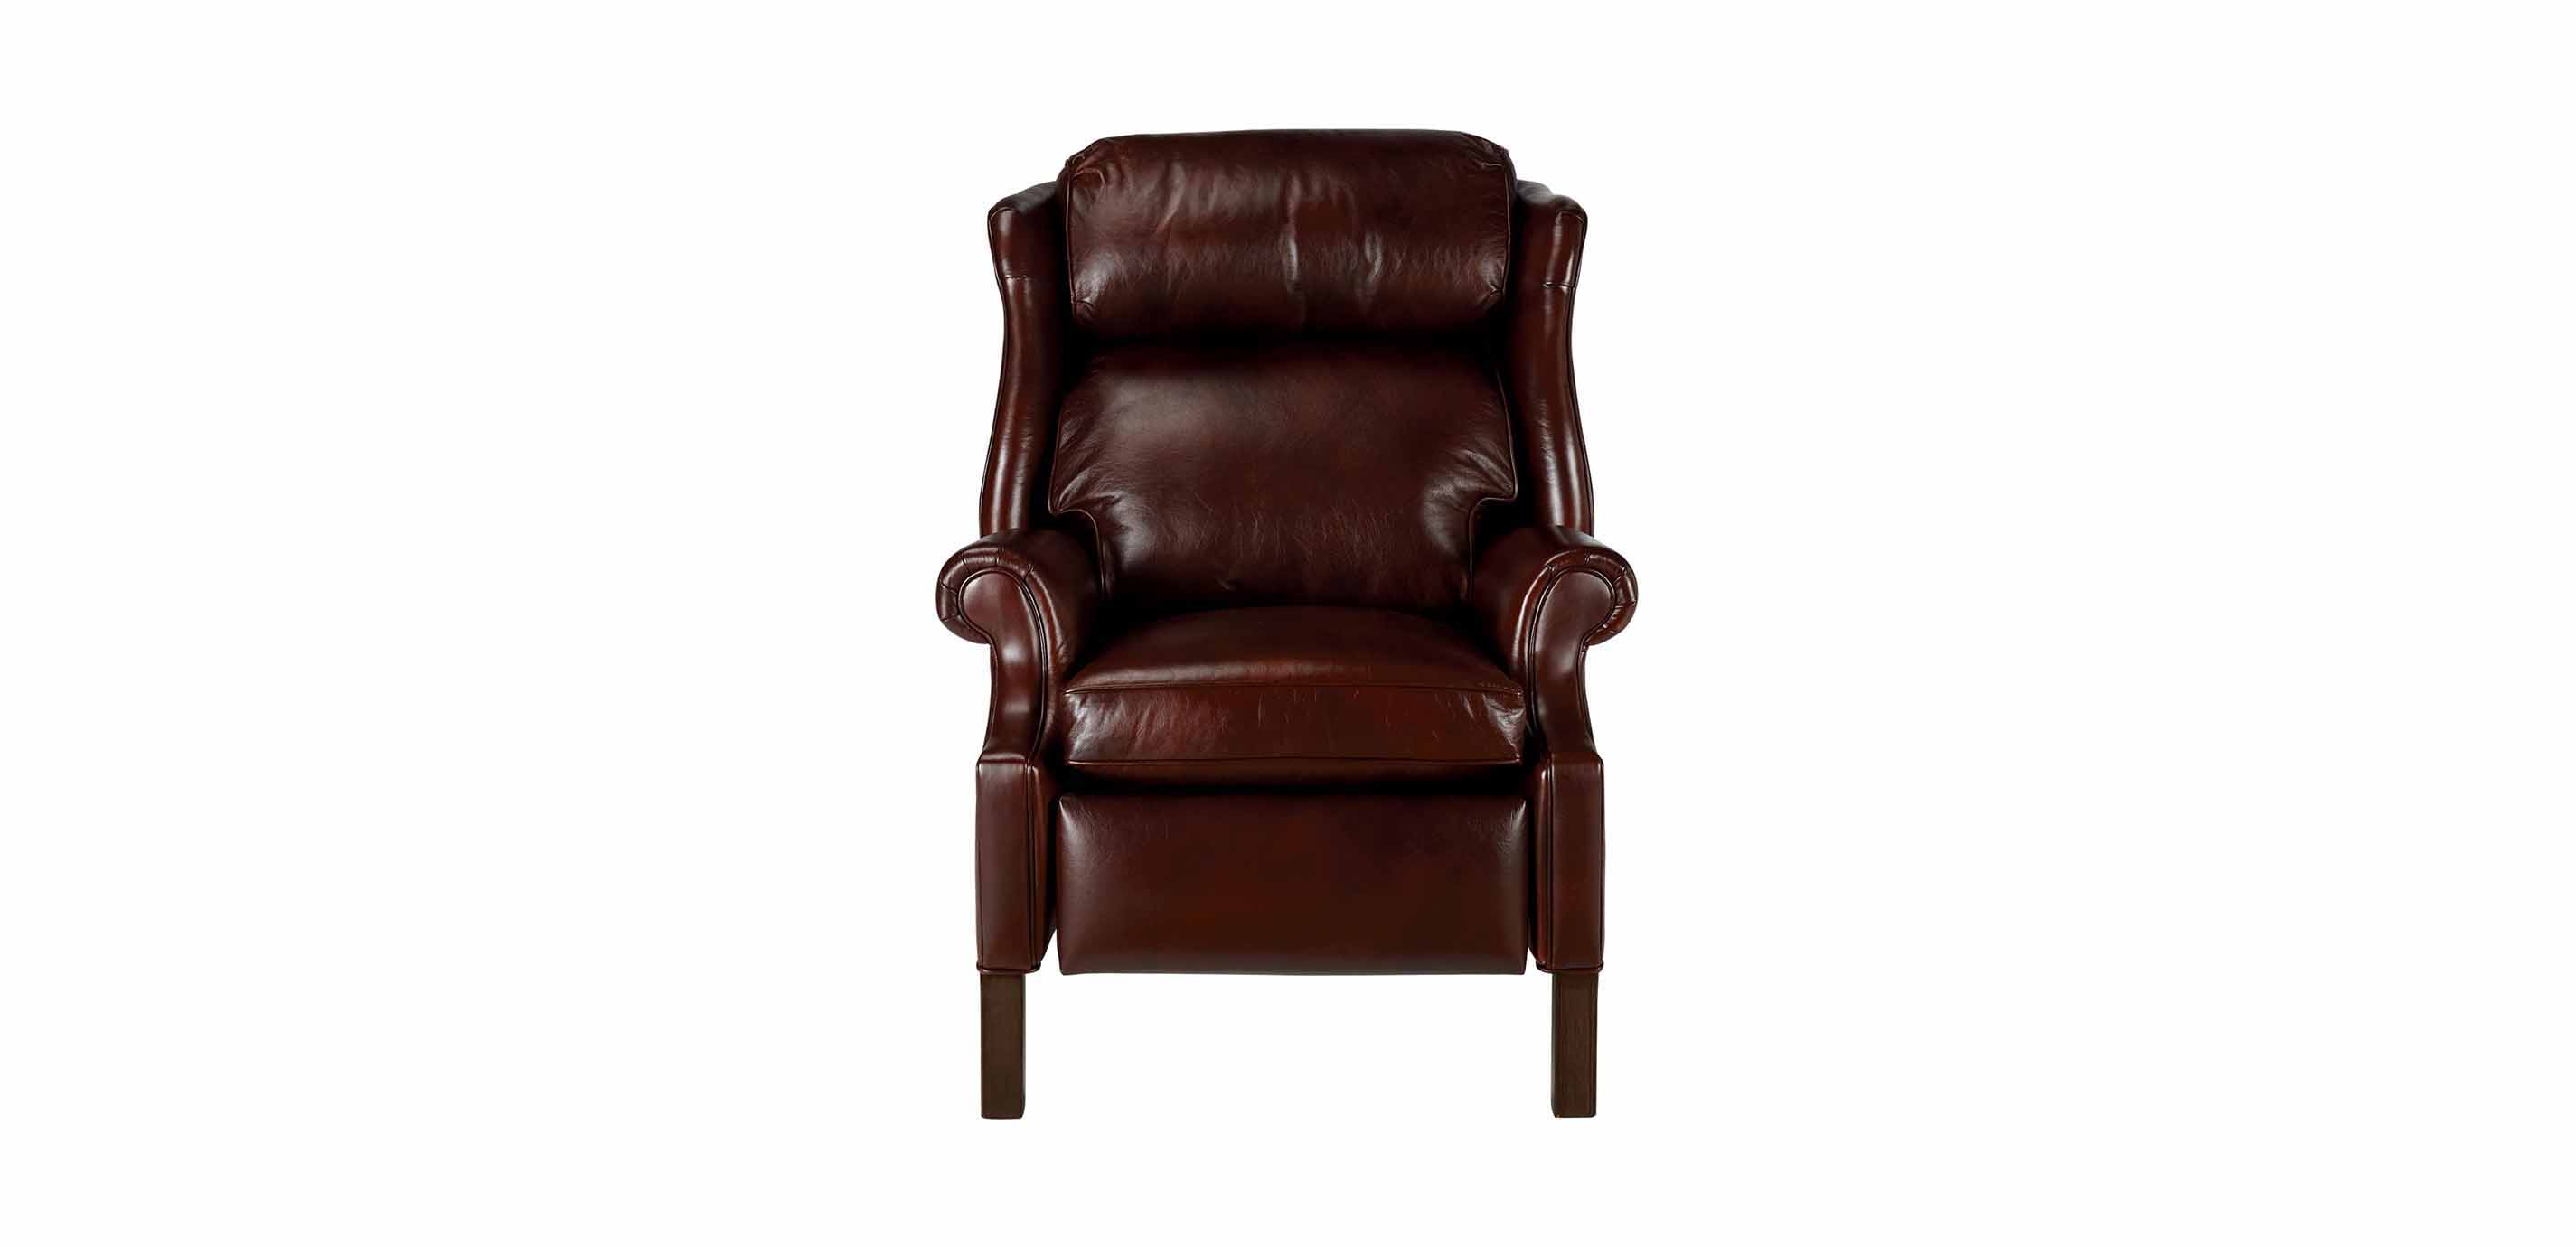 Images Townsend Leather Recliner, Old English/Chocolate , , Large_gray